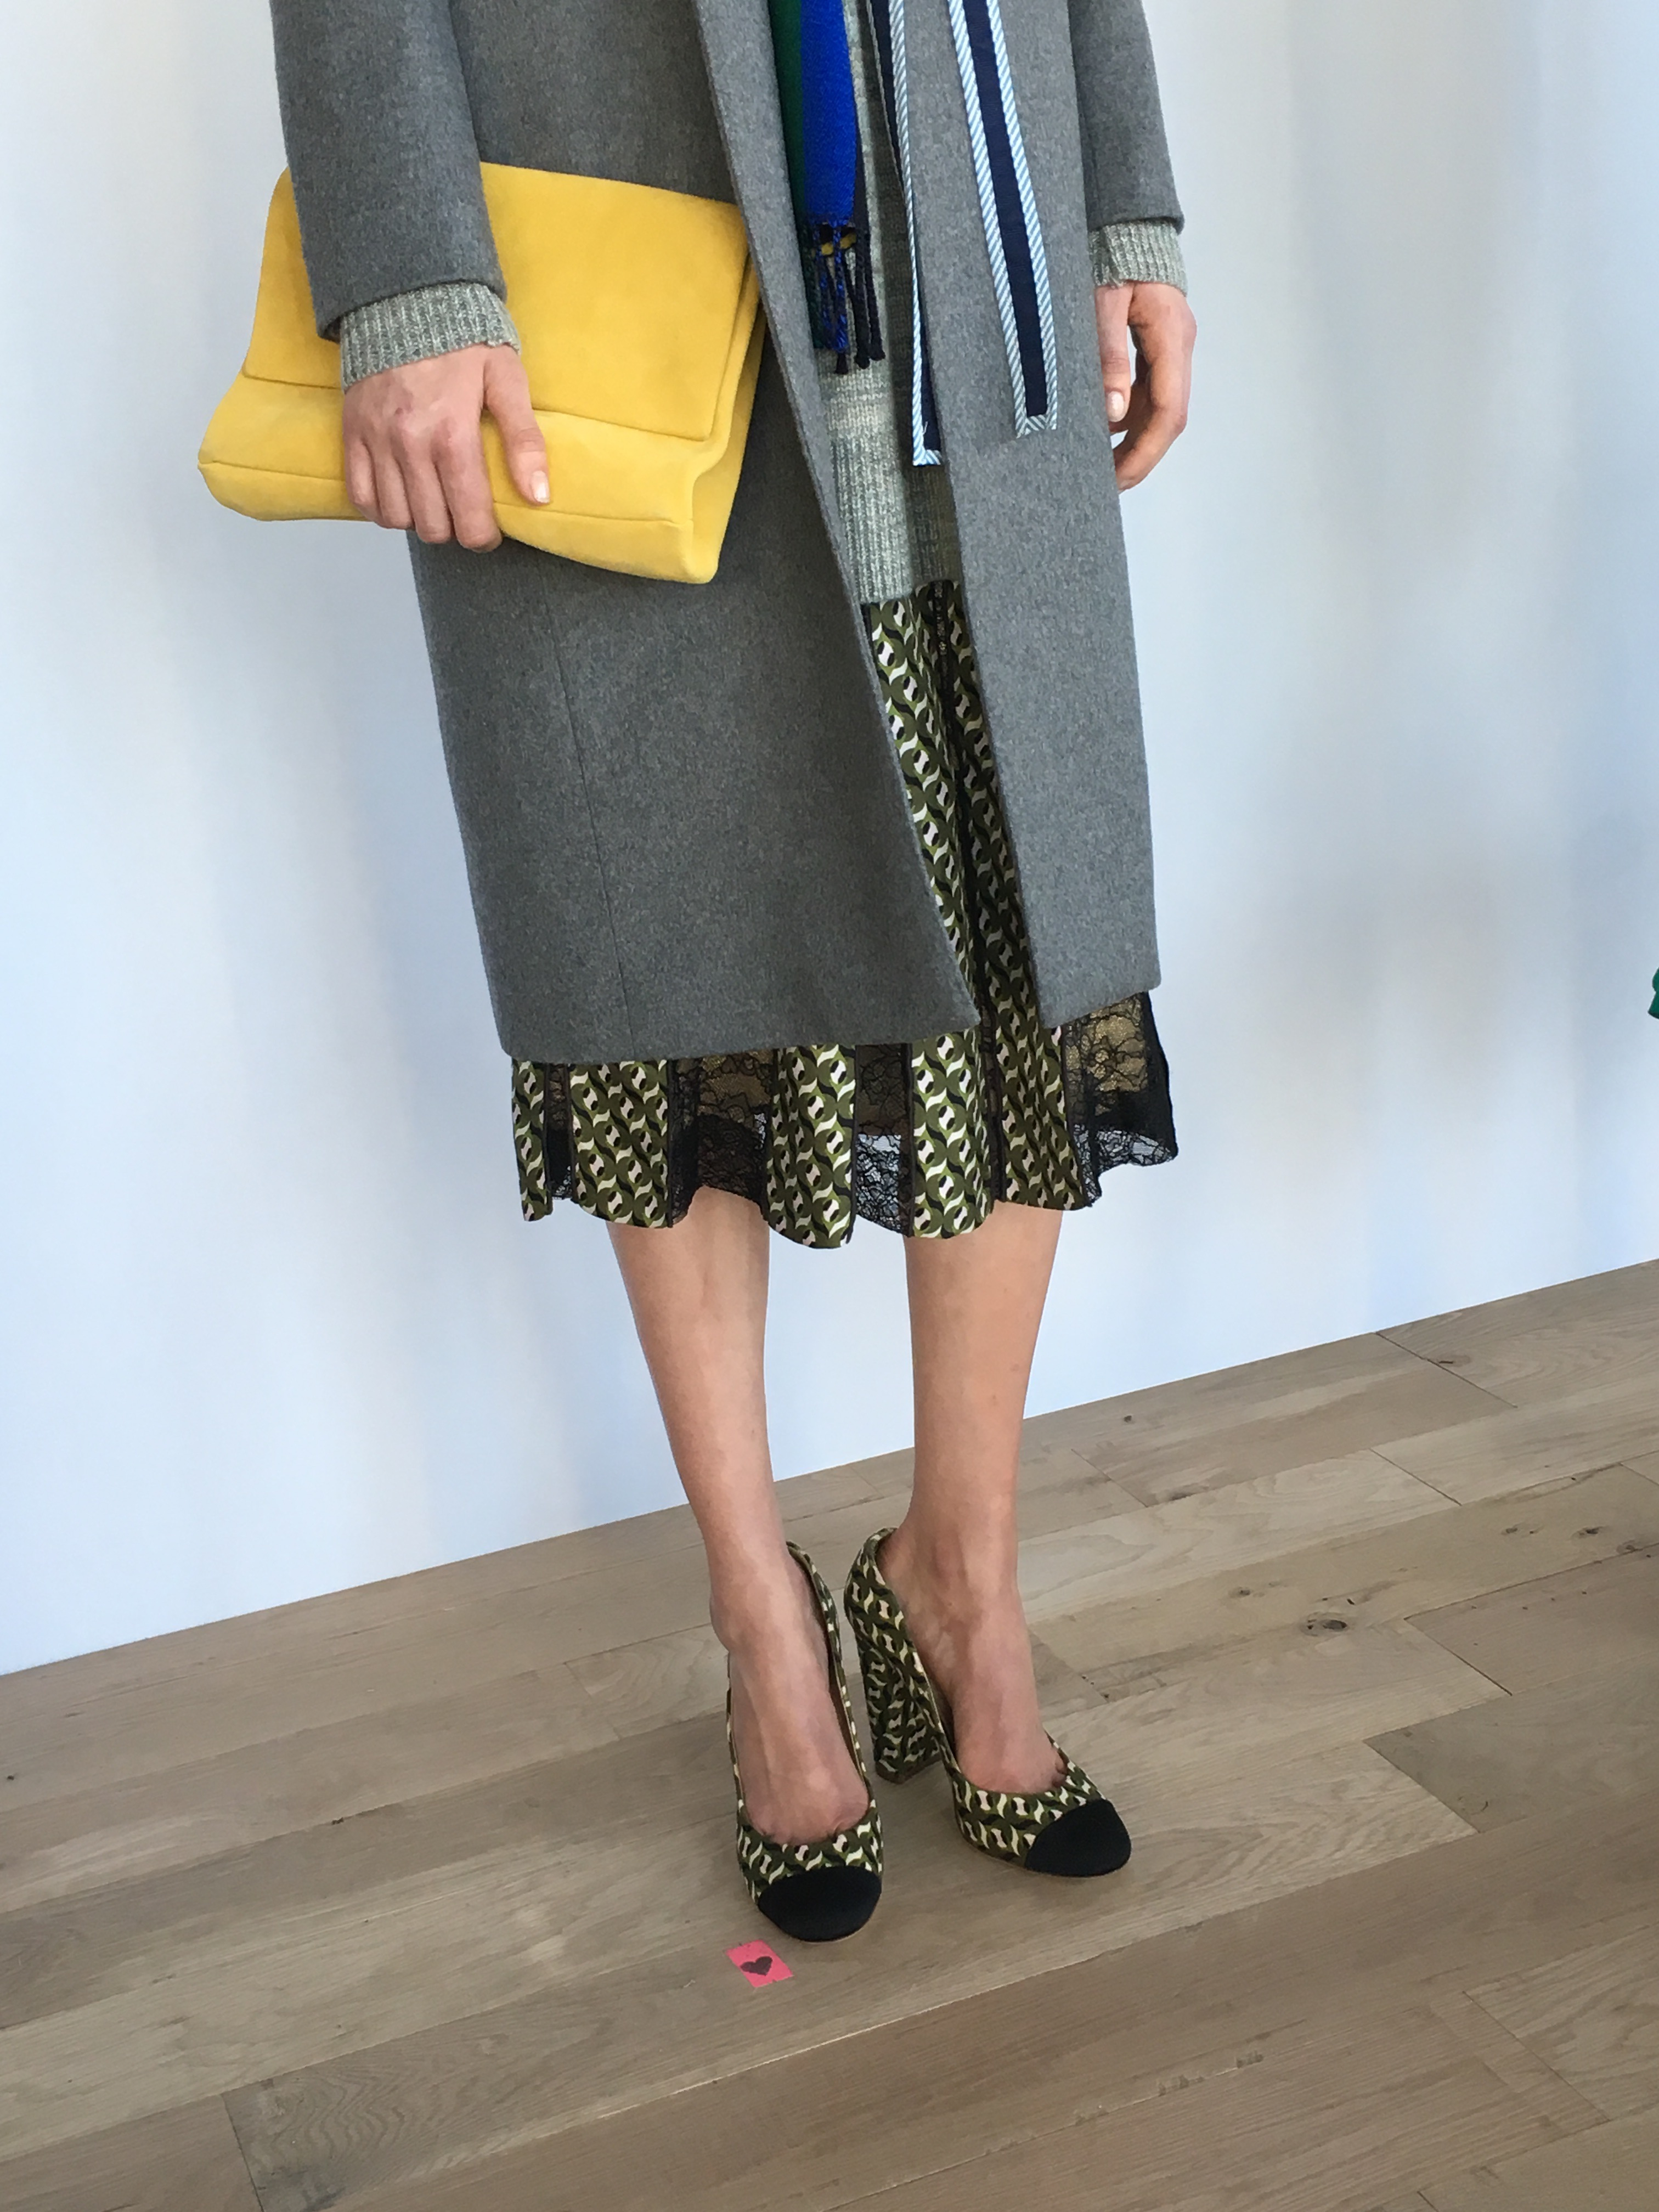 get-the-look-j-crew-nyfw-fall-winter-look-shoes-3